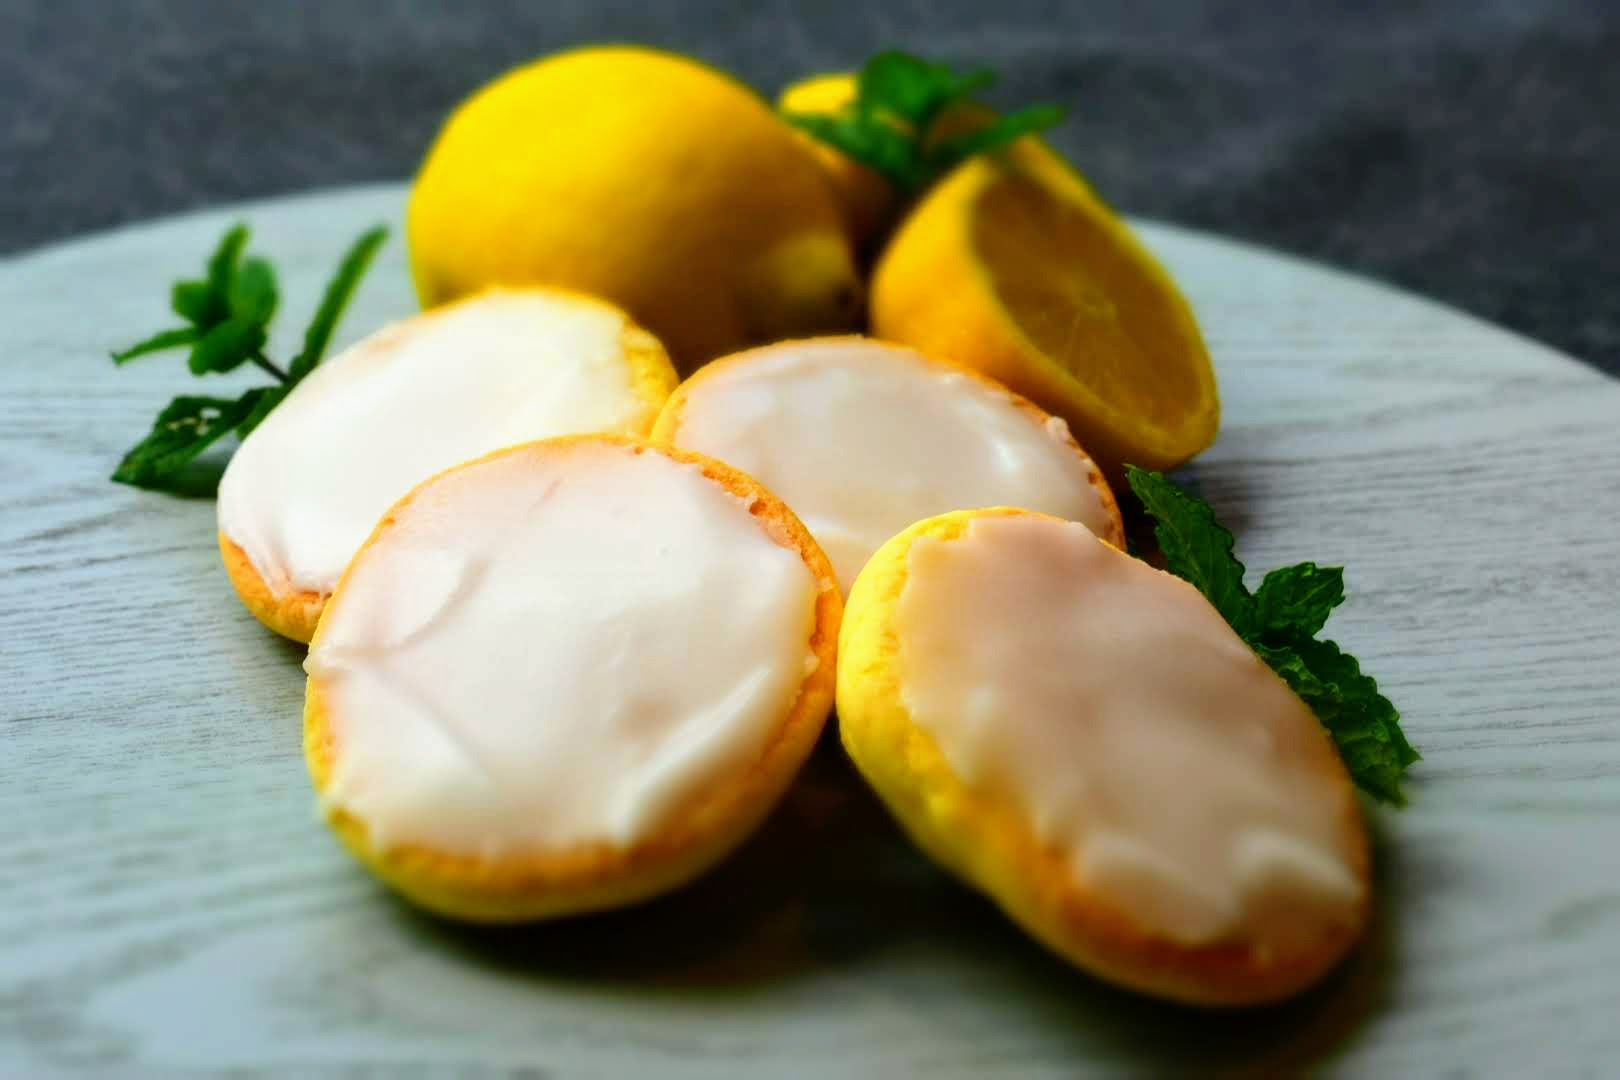 Delicious Lemon Delights